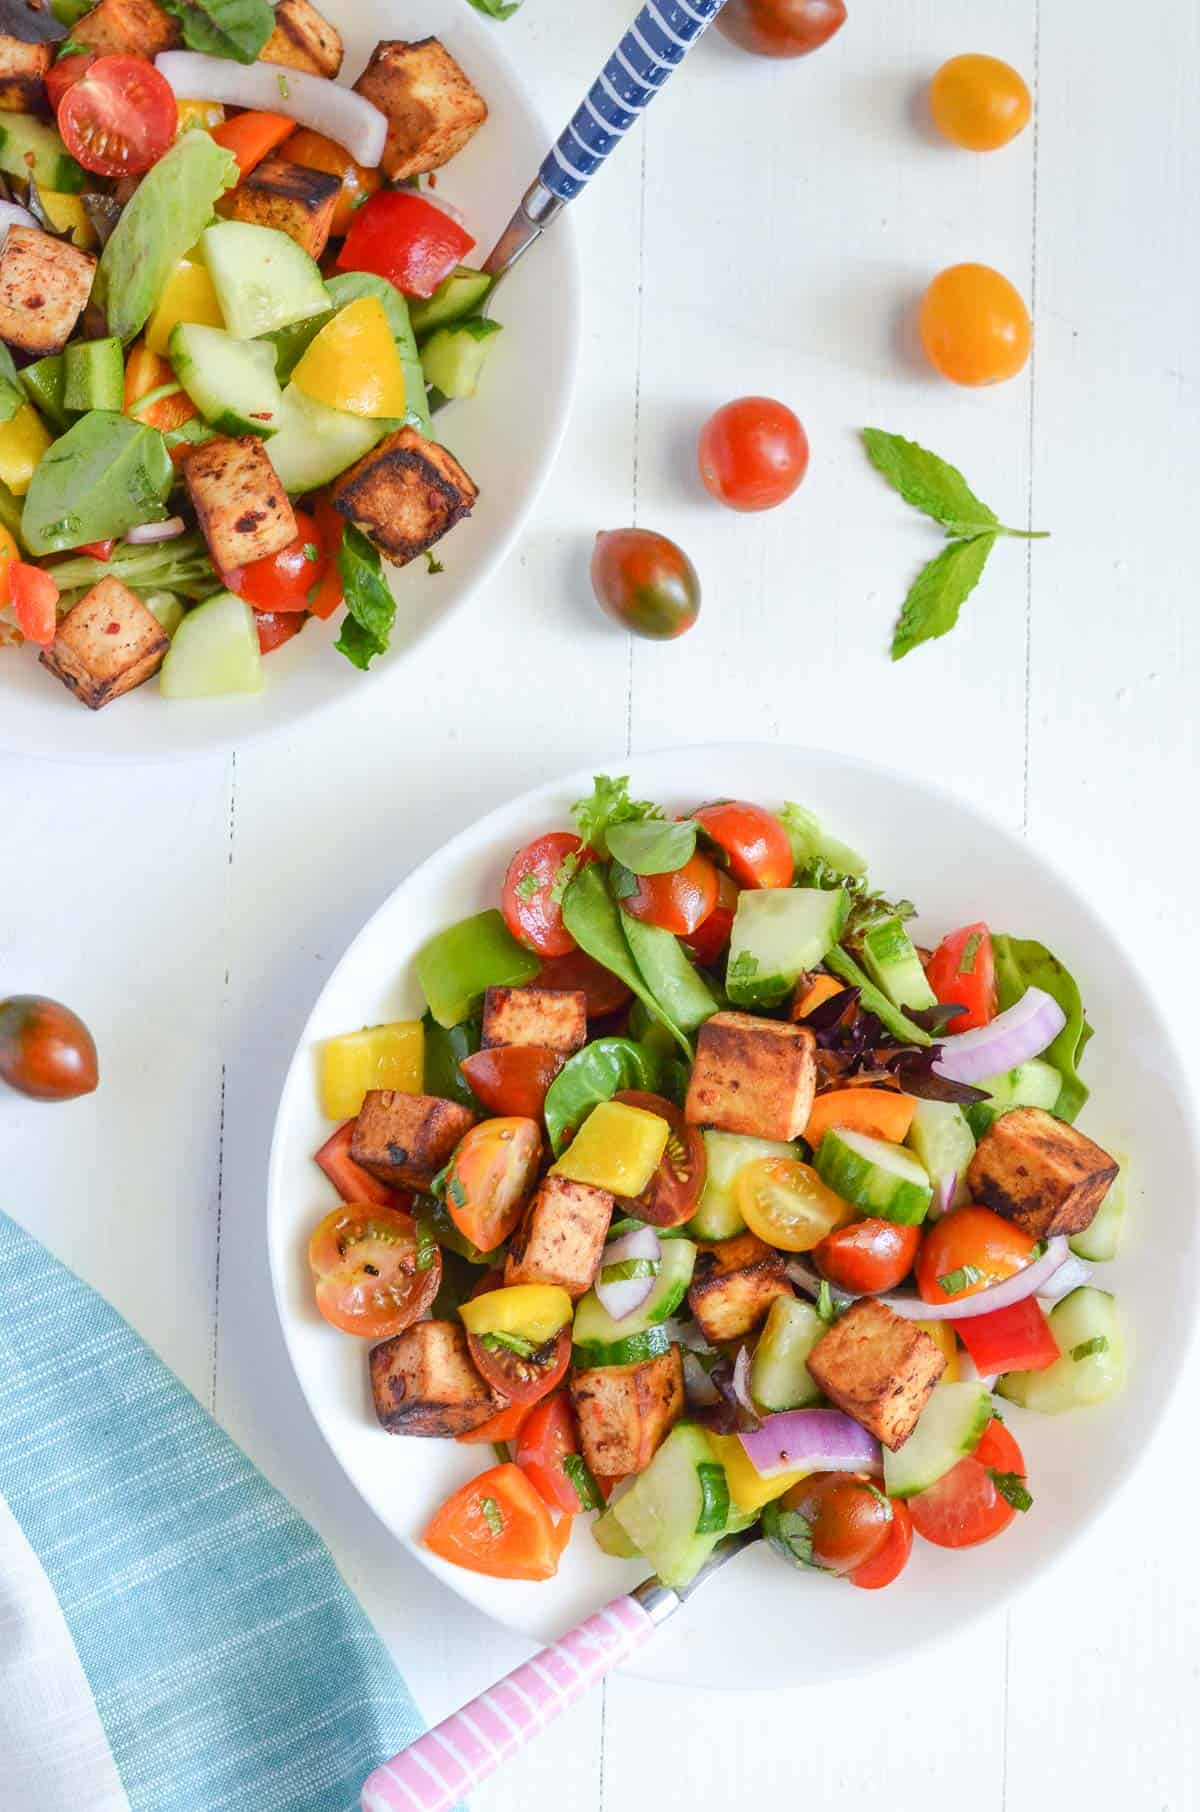 tofu panzanella salad is served in white plates